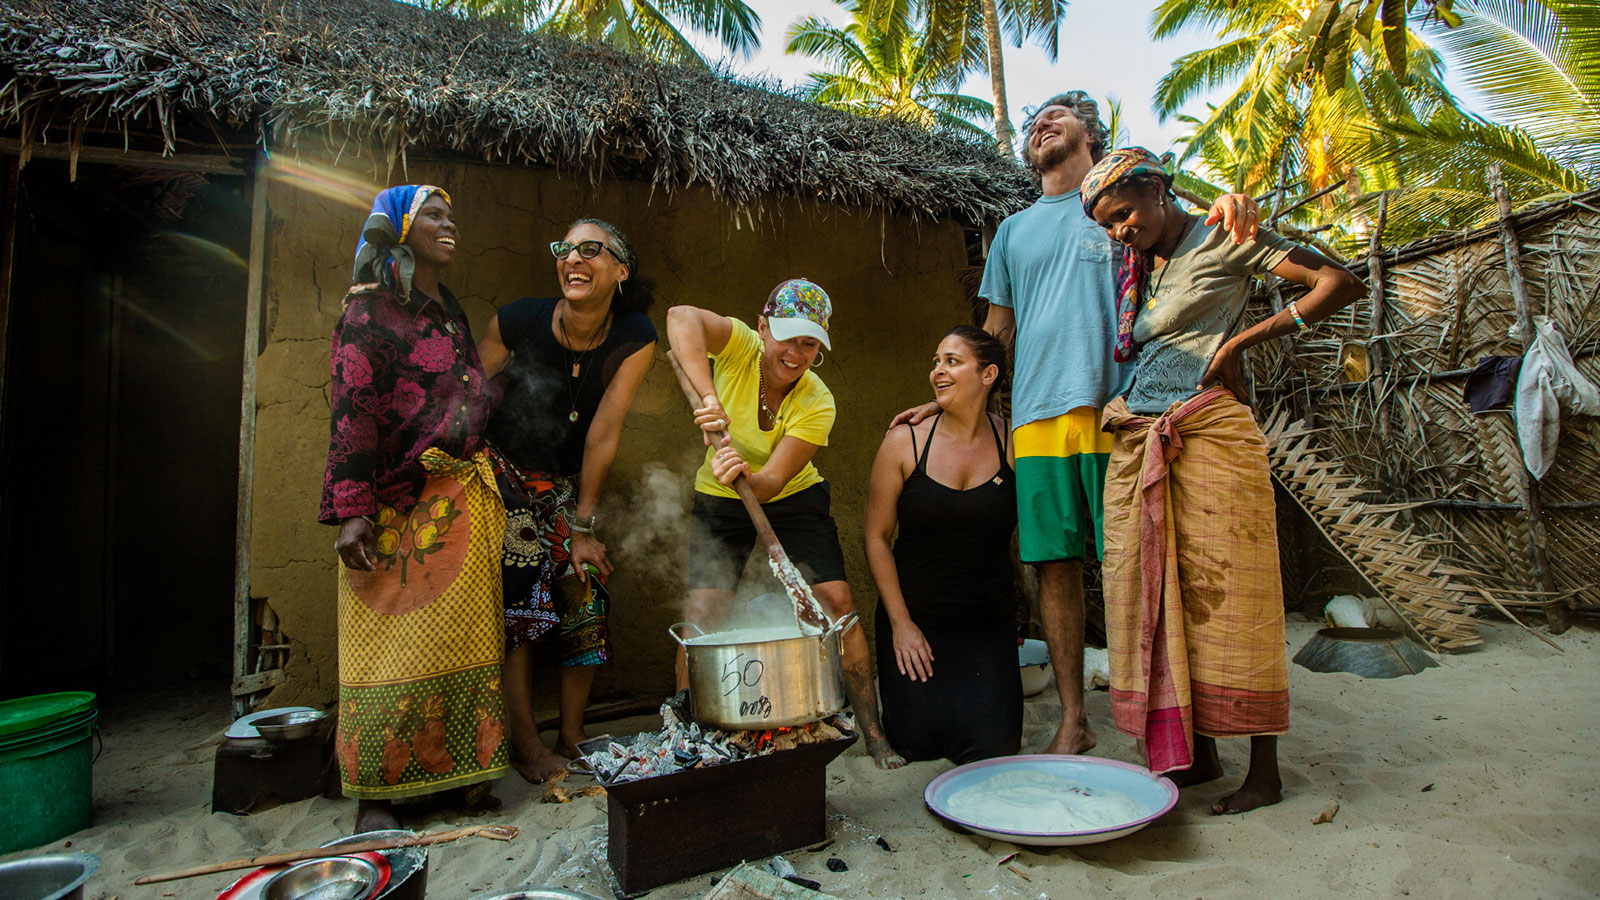 A group of people smile and laugh while cooking together.